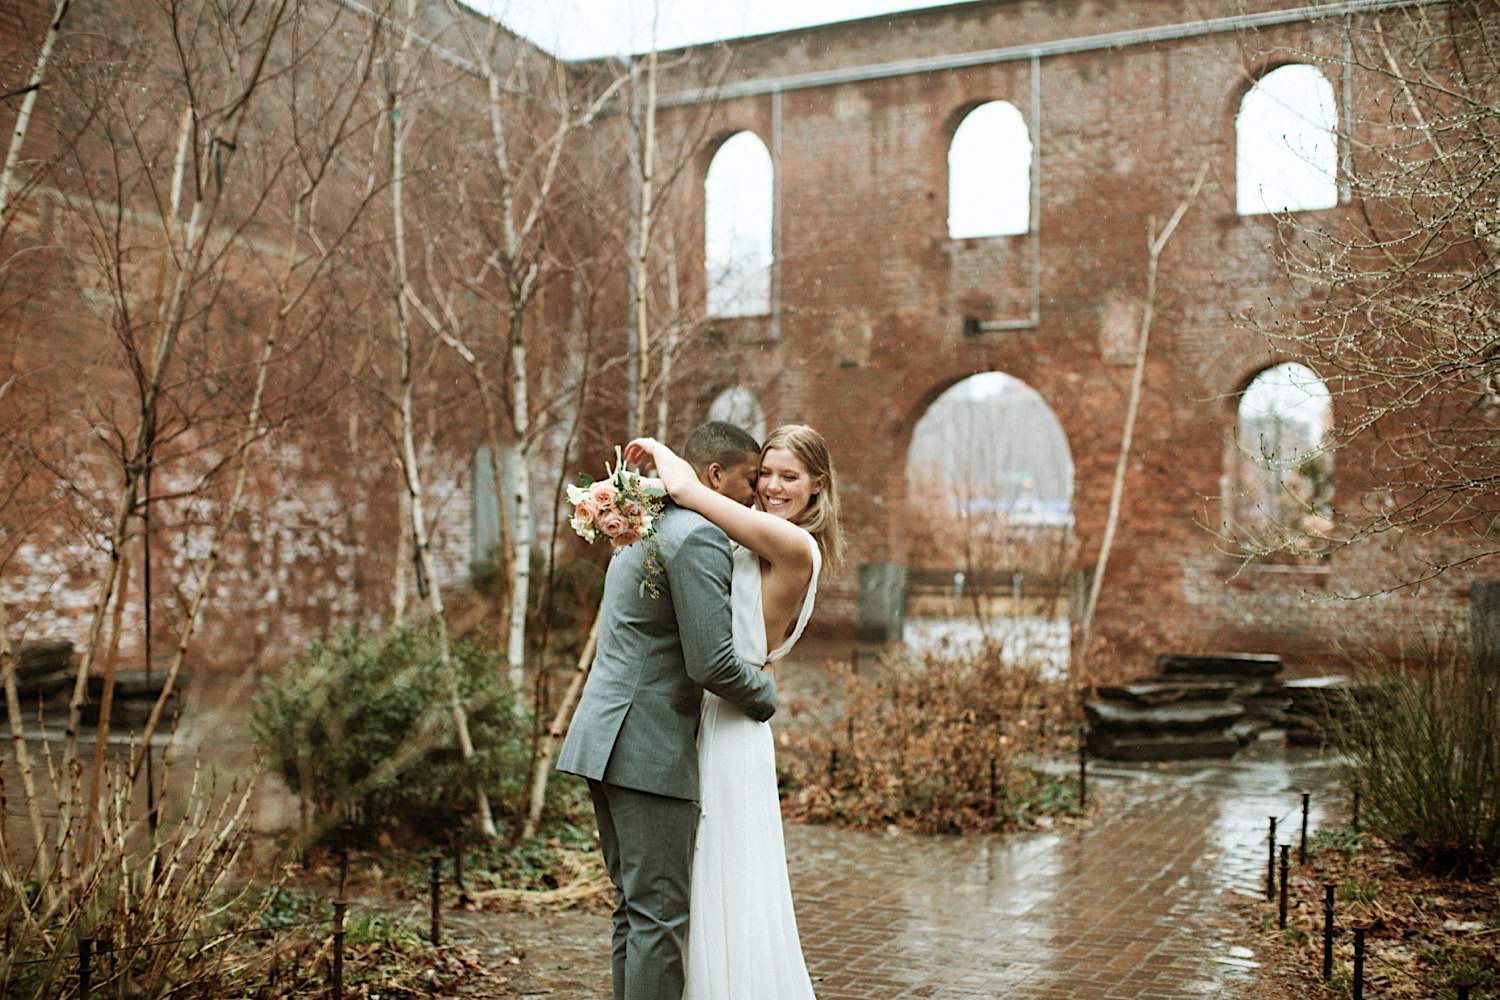 DUMBO Wedding Photography - Kissing Under the Rain at St. Ann's Warehouse